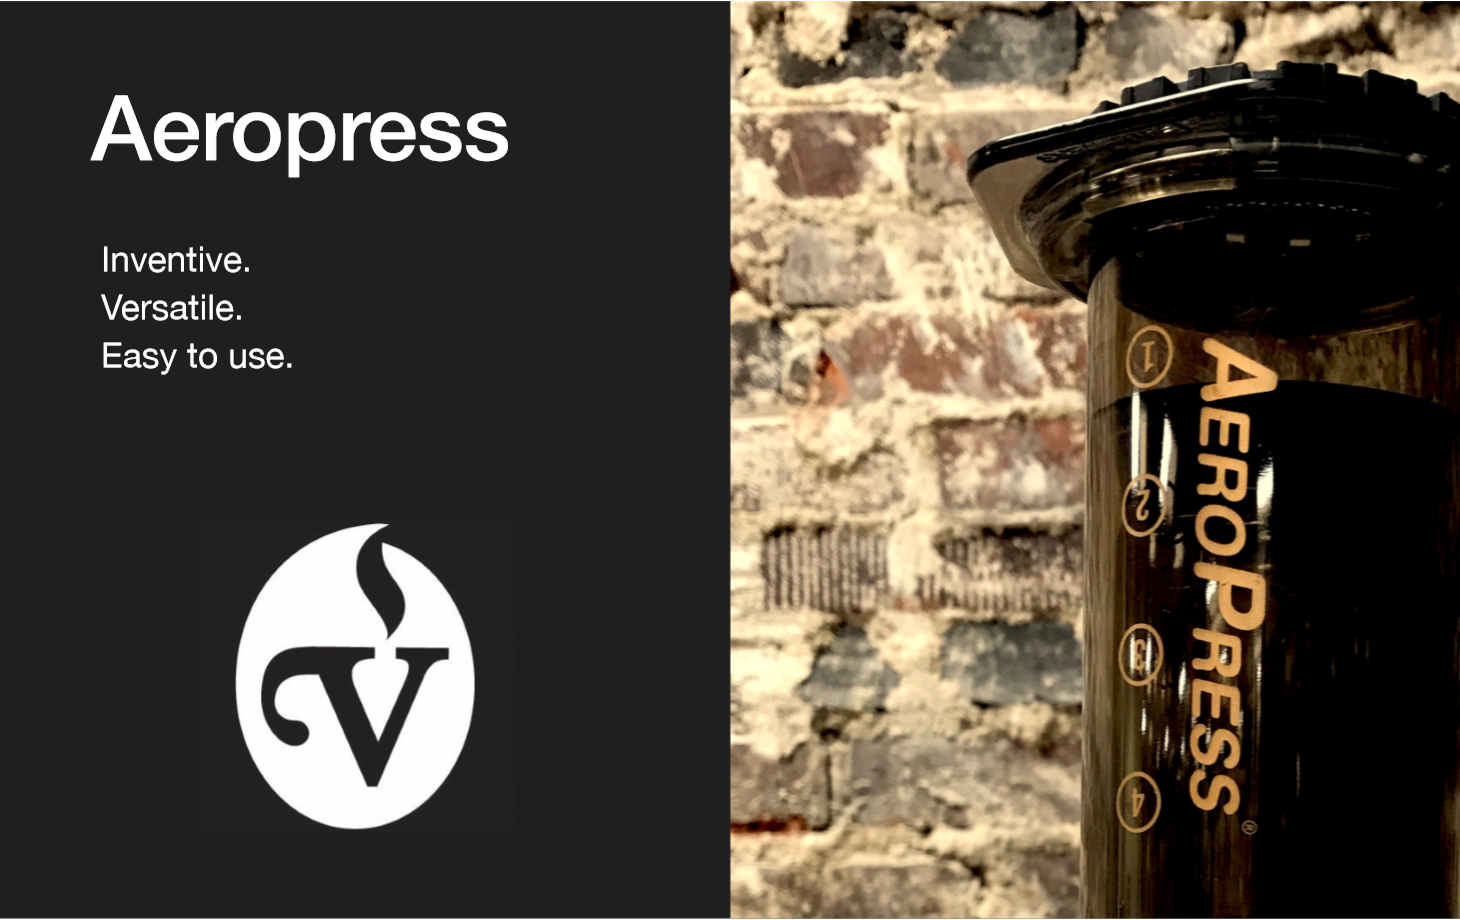 Aeropress - The Aeropress is a great brewer for that single cup on the go. It produces a rich, deep cup of coffee that is best suited for light to medium roasted coffees.